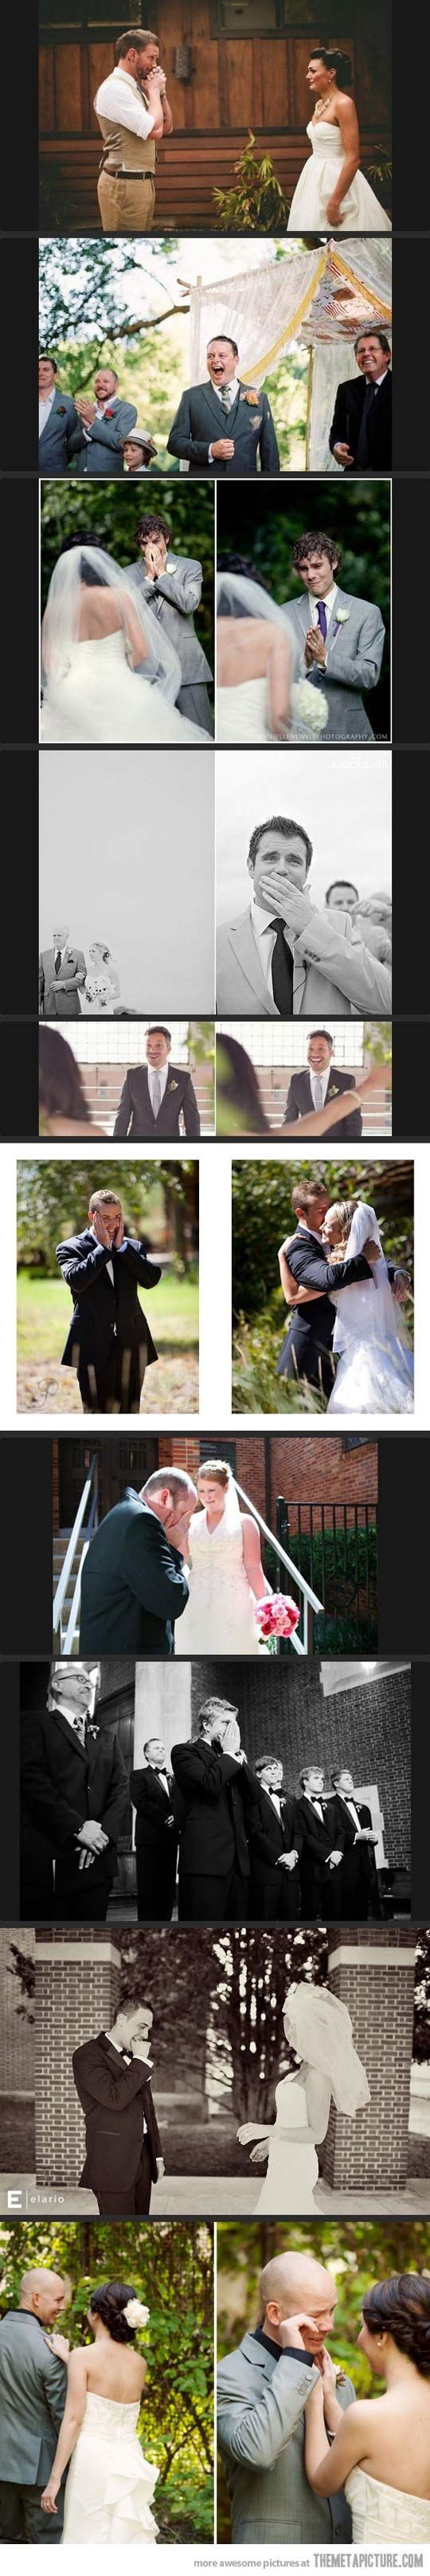 Grooms seeing their brides on their wedding days for the first time...must have